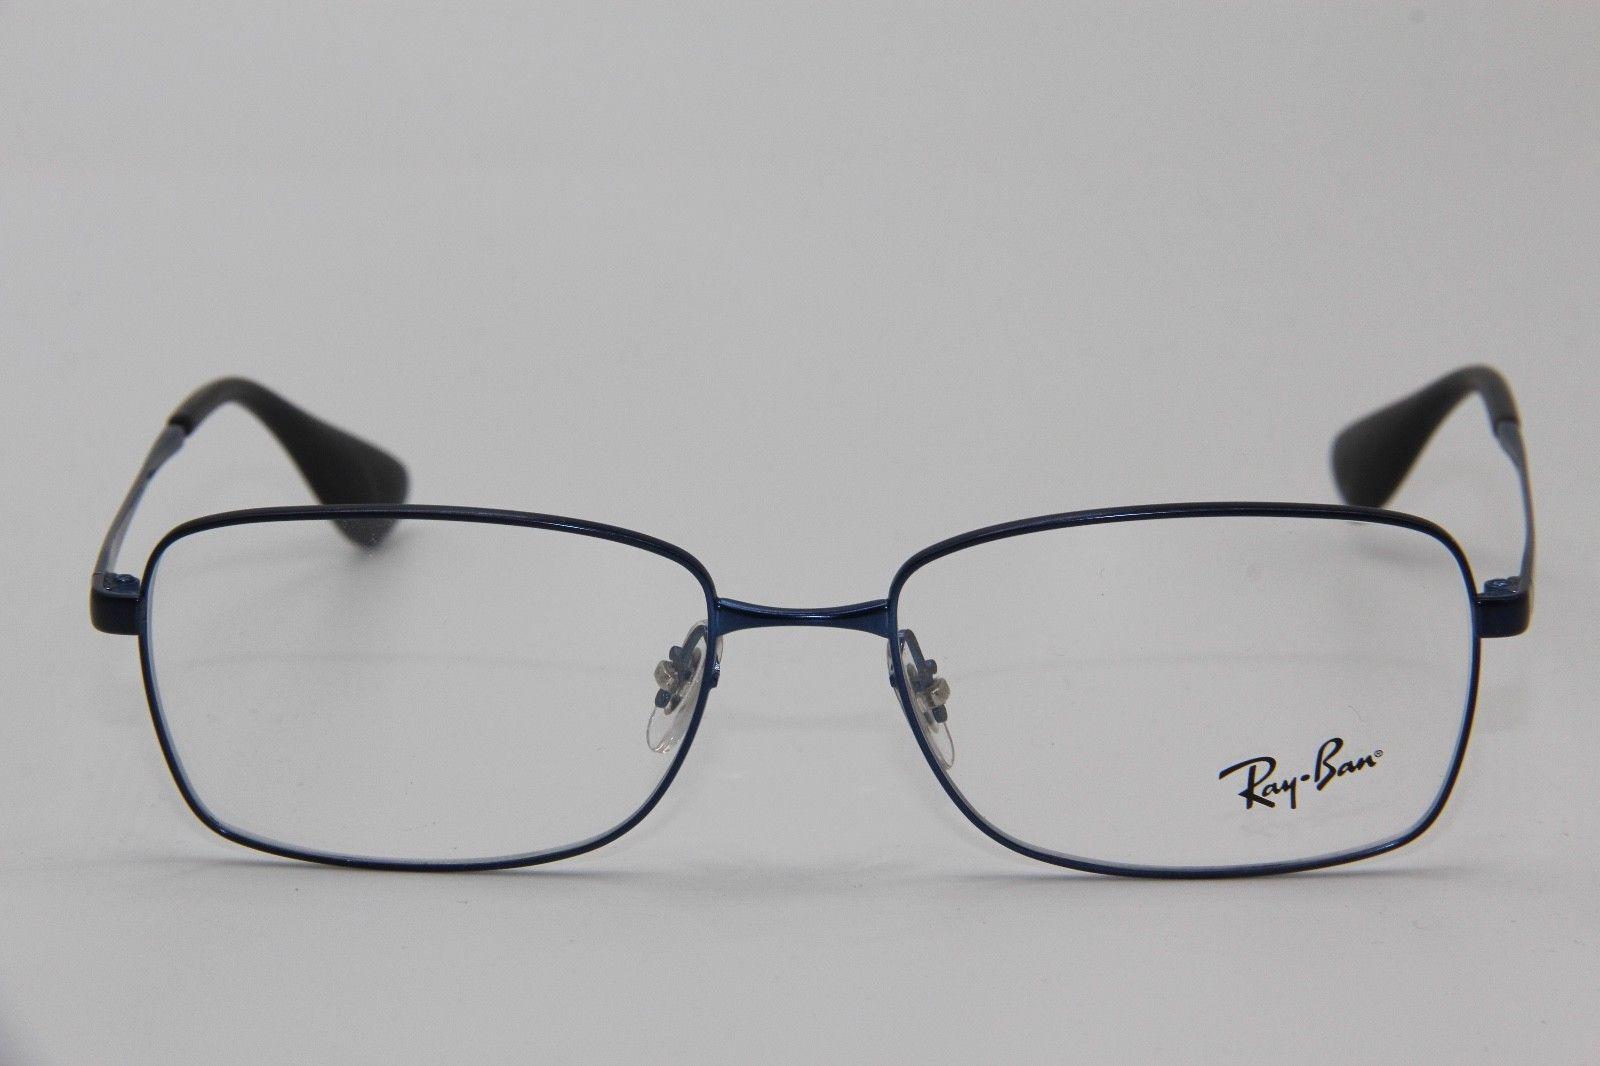 e8377b30e48 RAY-BAN Rb 6336M 2510 Blue Authentic Frames and 50 similar items. 57